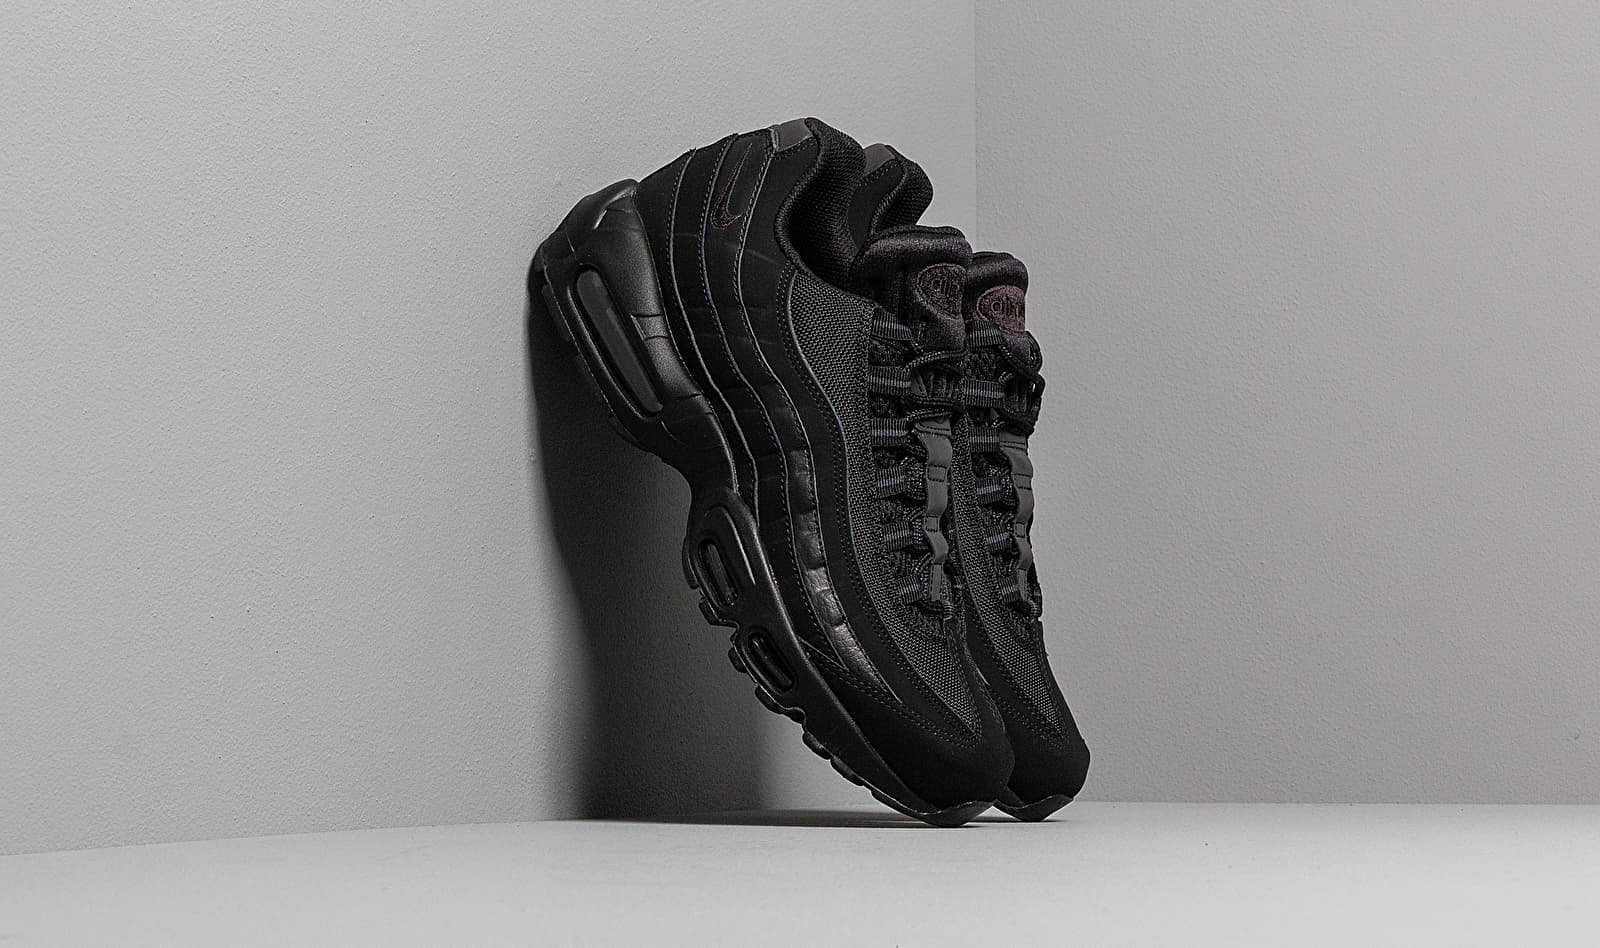 Nike Air Max 95 Black/ Black-Anthracite EUR 45.5